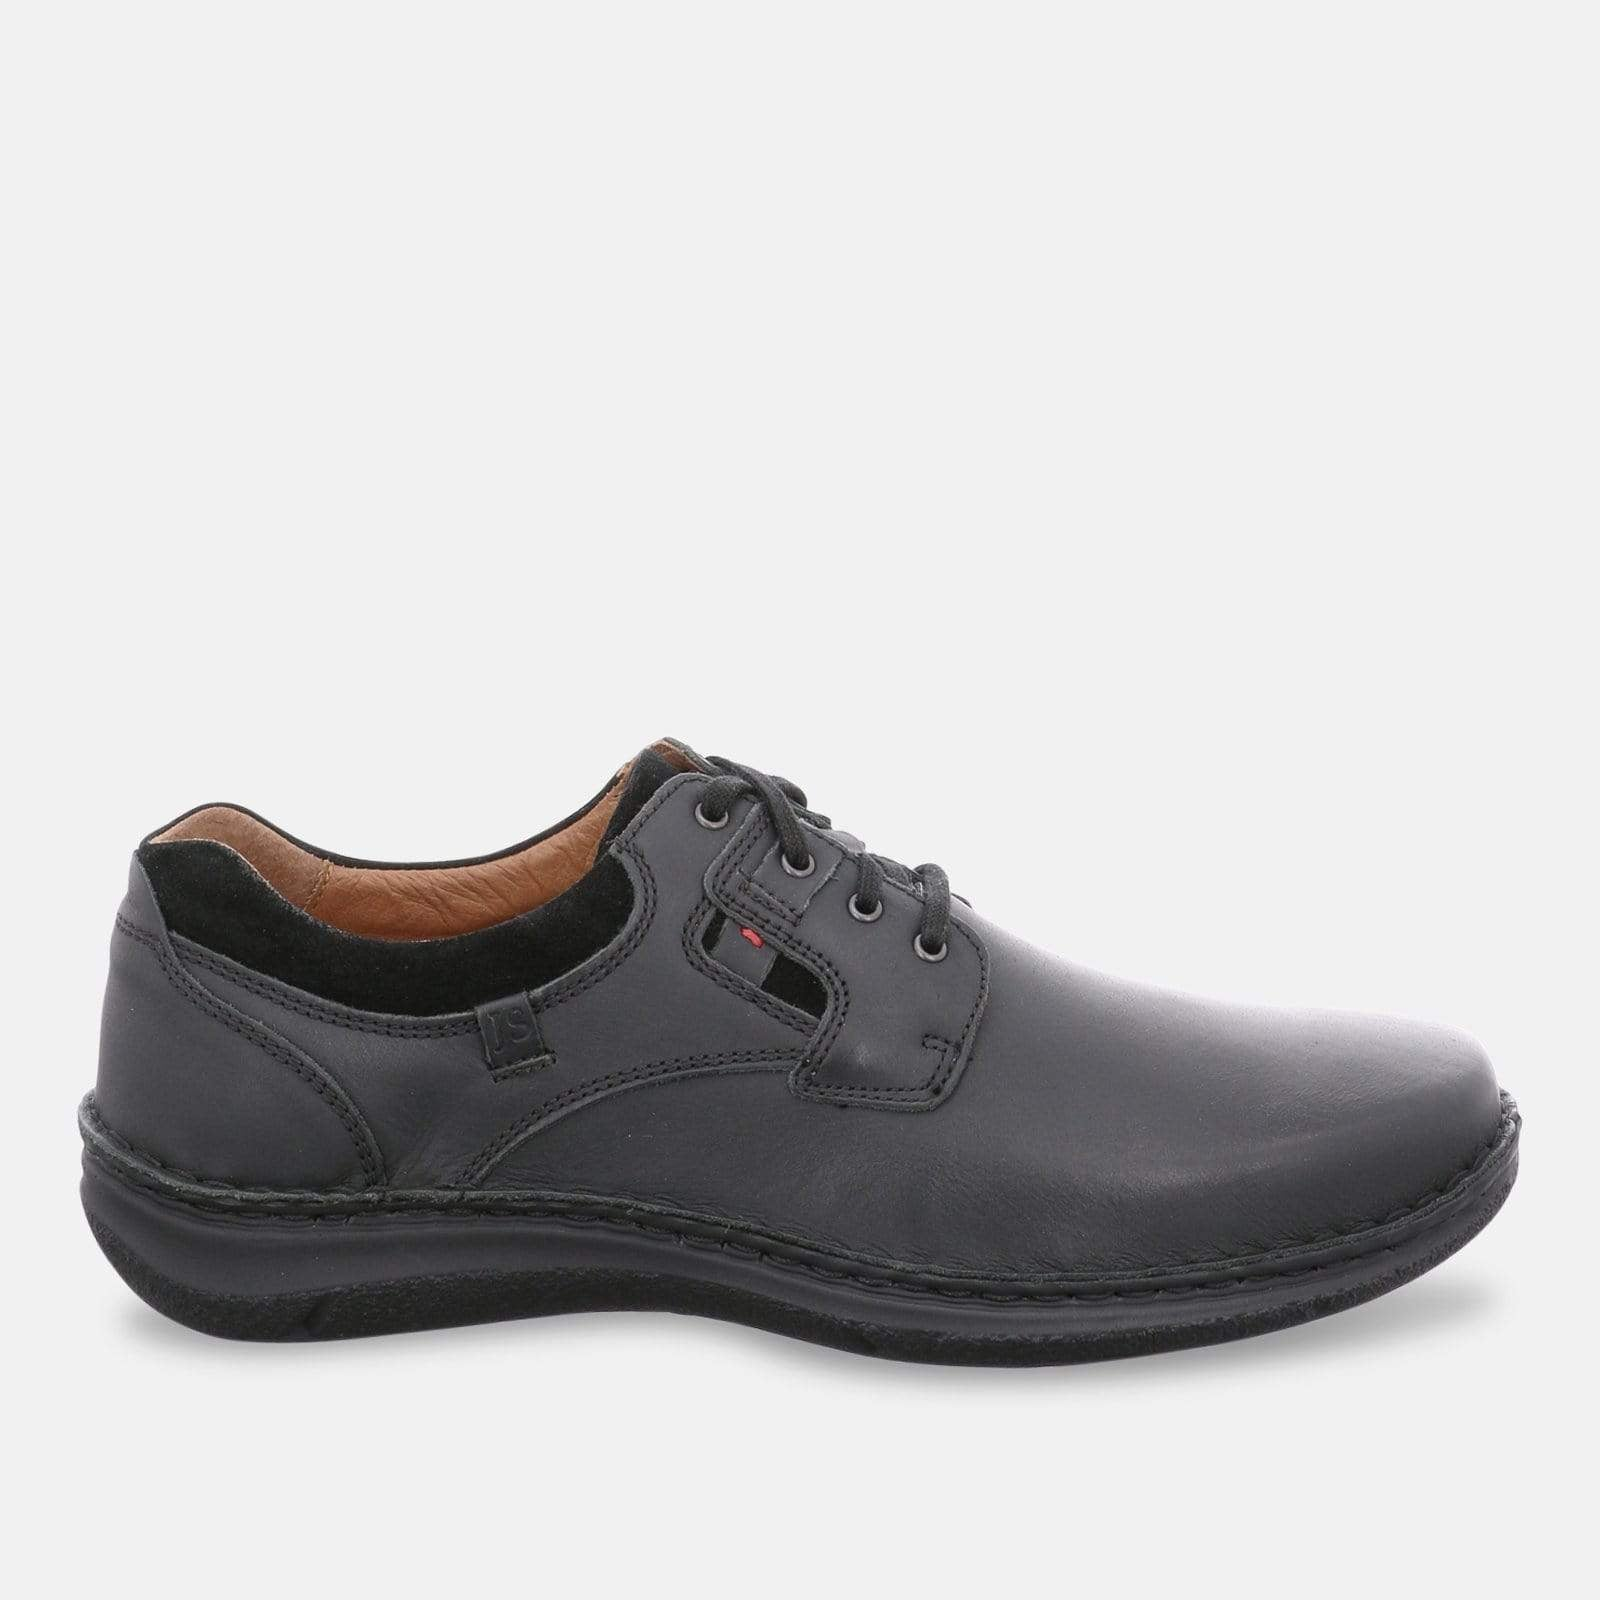 Josef Seibel Footwear Anvers 36 Black